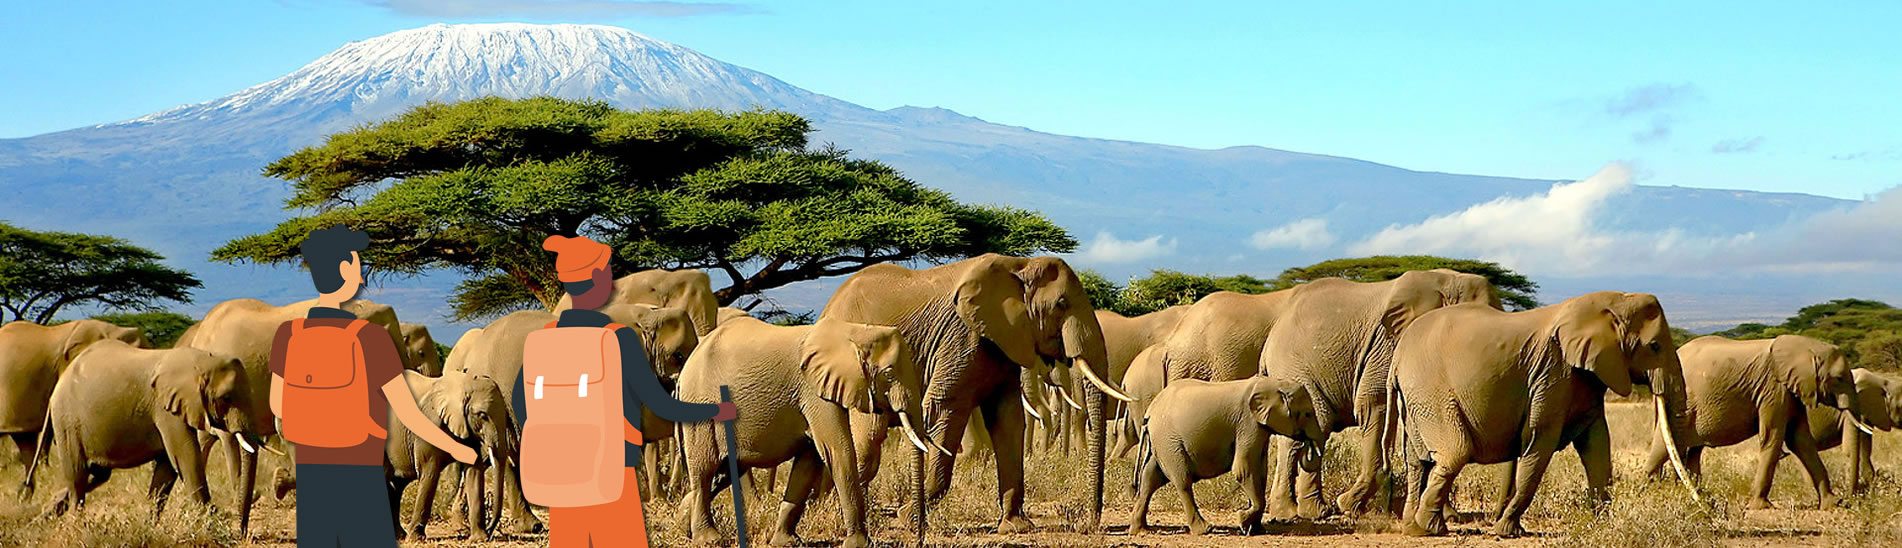 terre-authentic-safaris-tours-tanzania-guided-tours-2_r1_c1